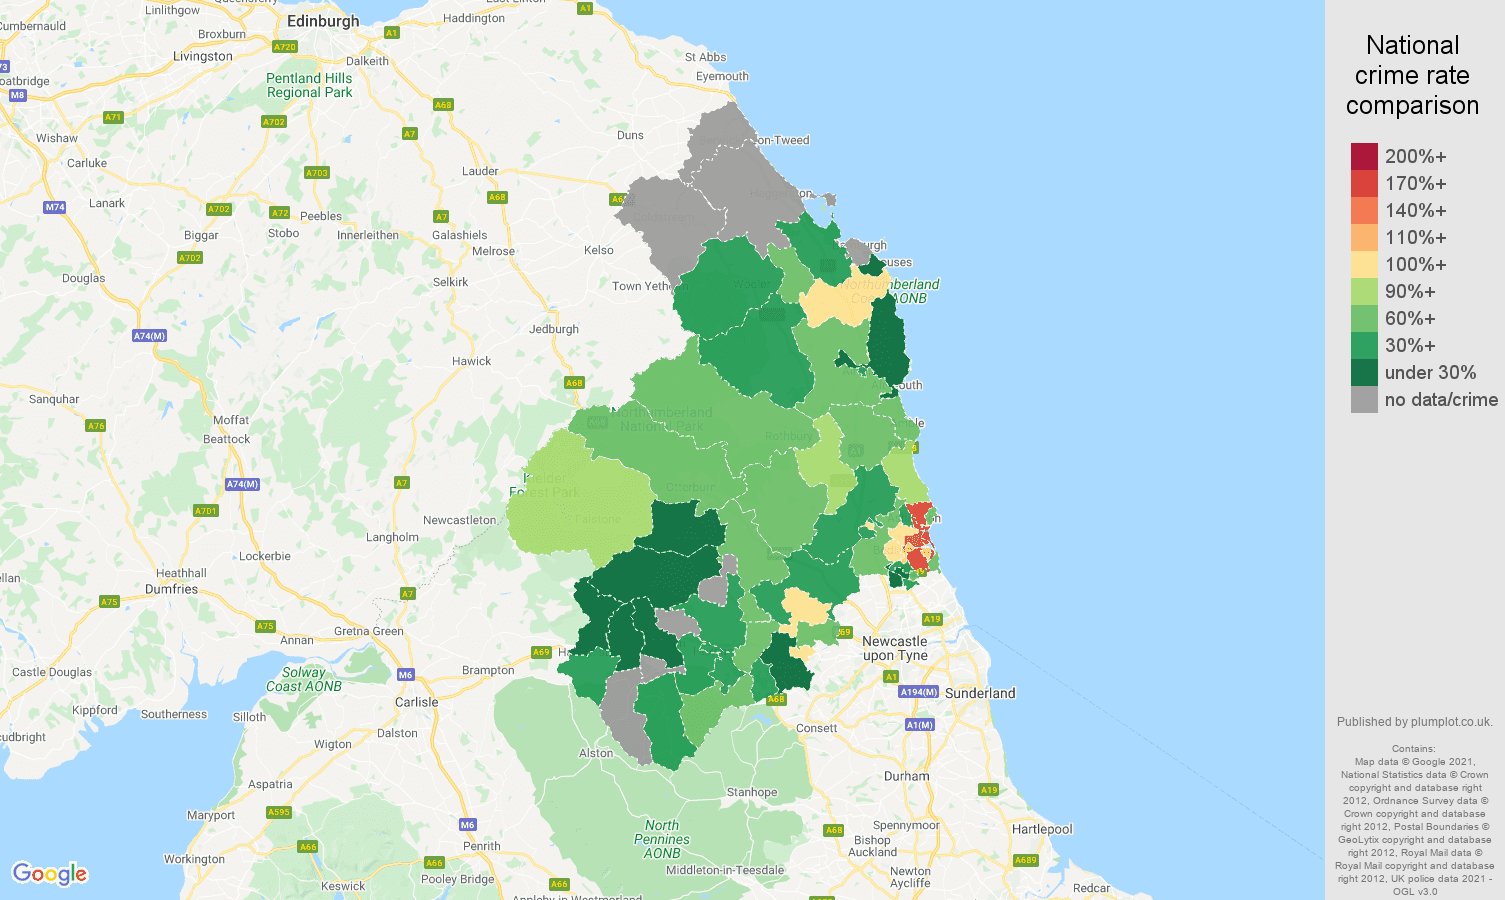 Northumberland burglary crime rate comparison map